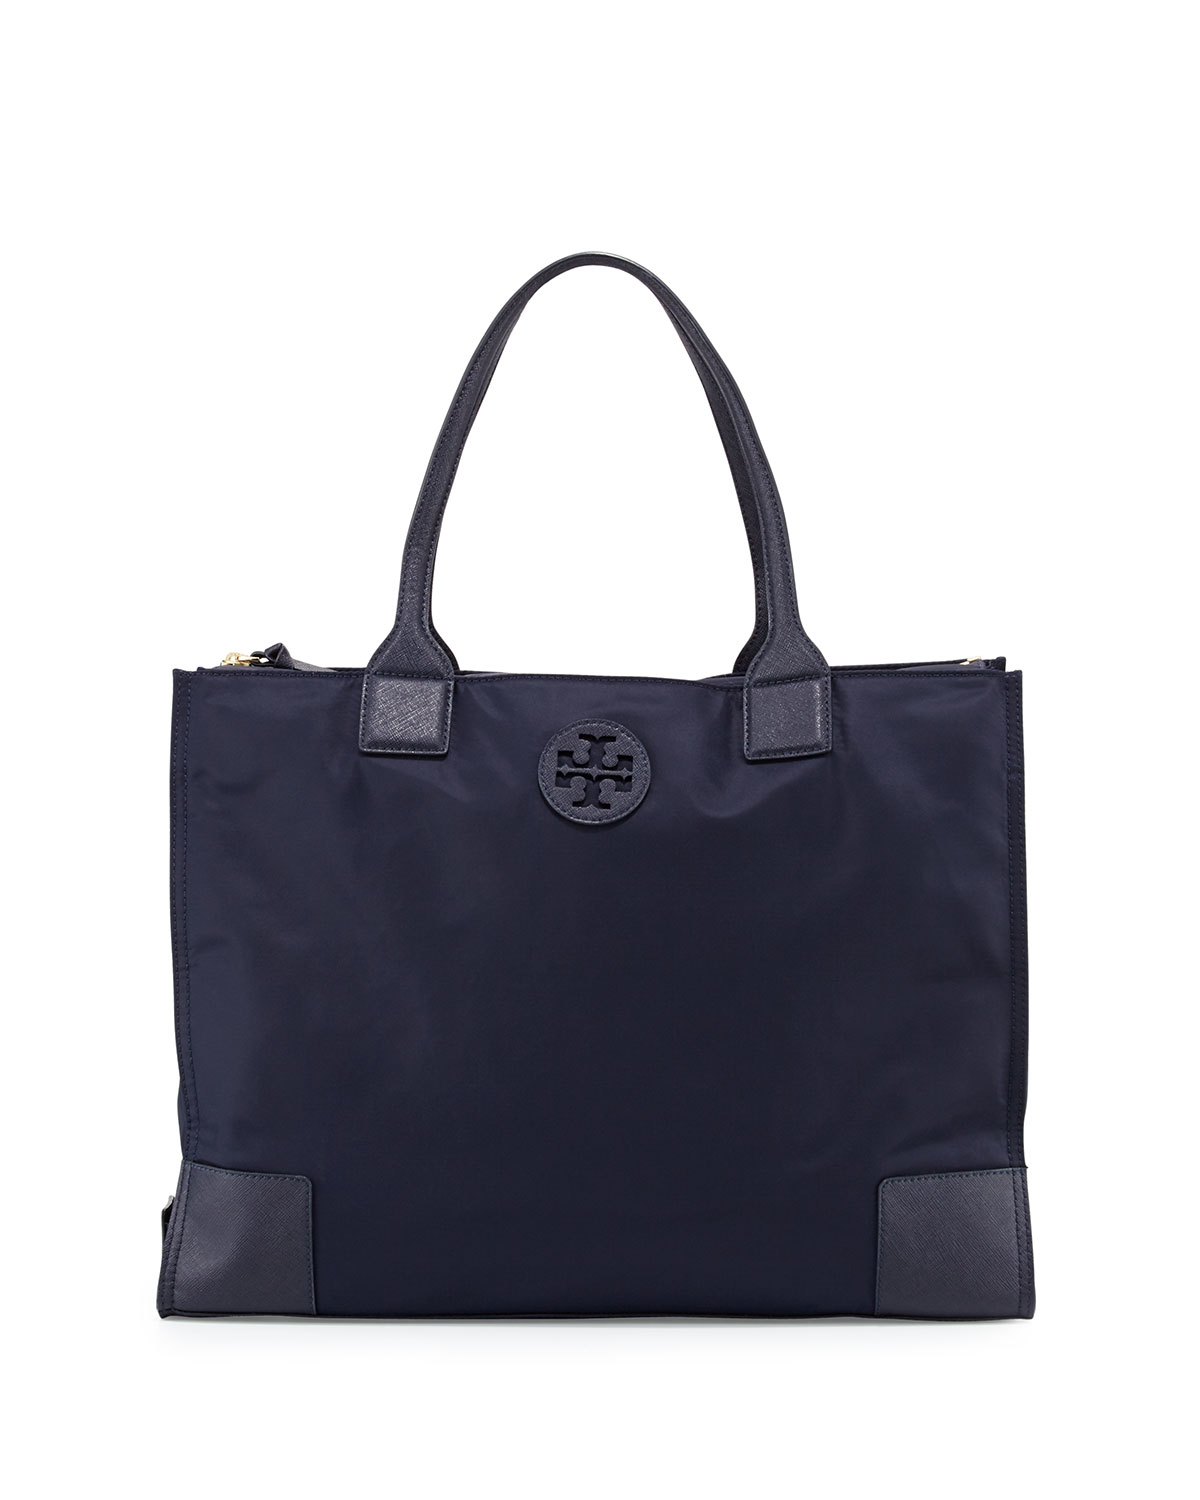 Get free shipping & returns for designer sale pieces & women's designer clothing from Tory Burch. Find the season's styles online at yocofarudipumu.cf